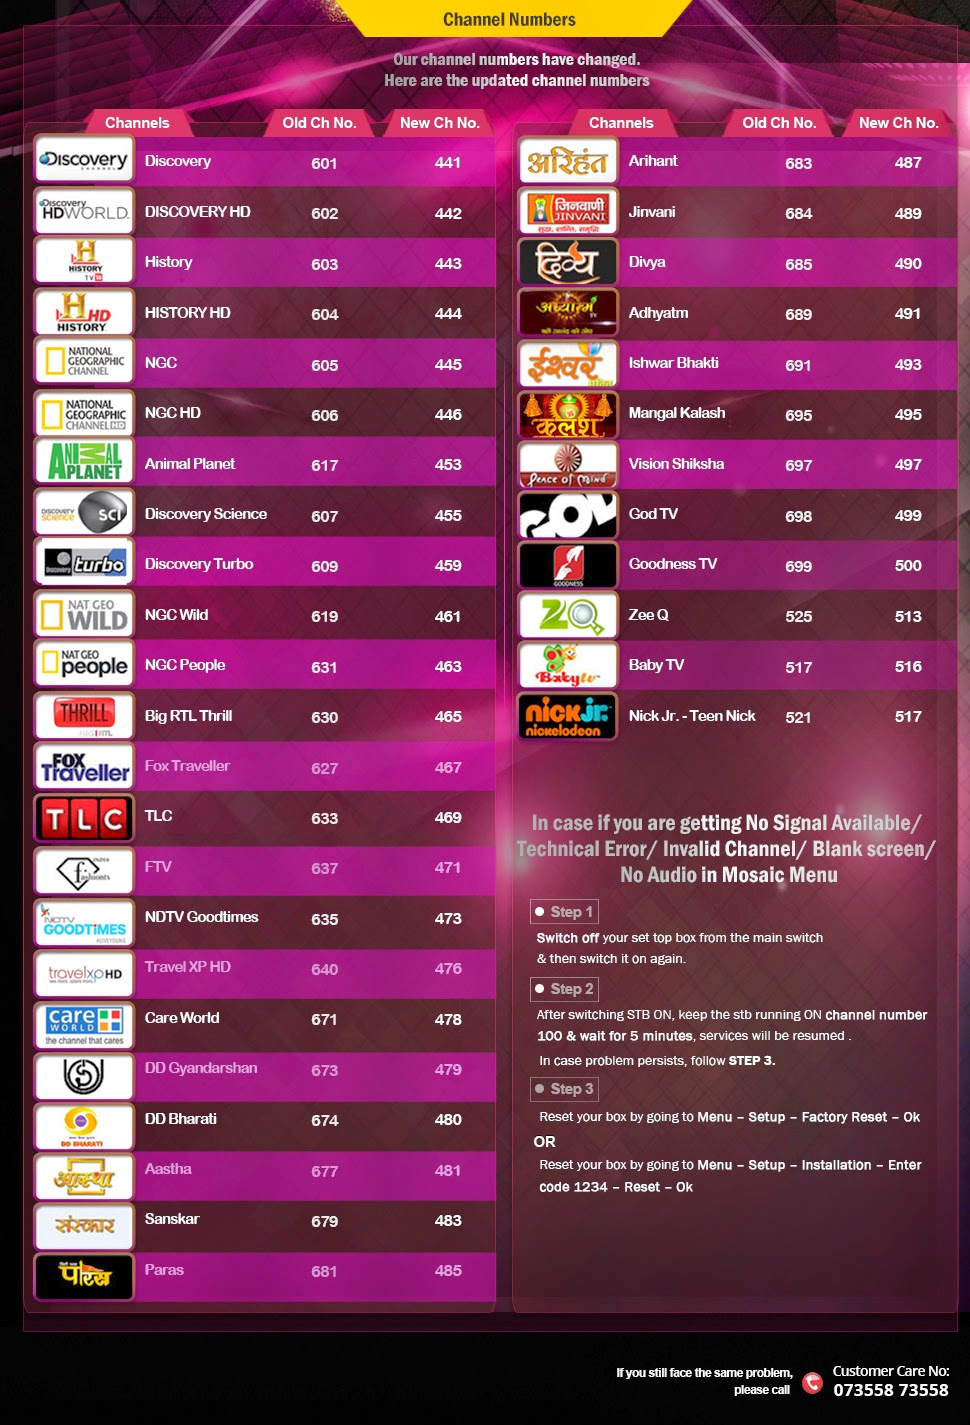 Videocon D2H changed again channel Nos.